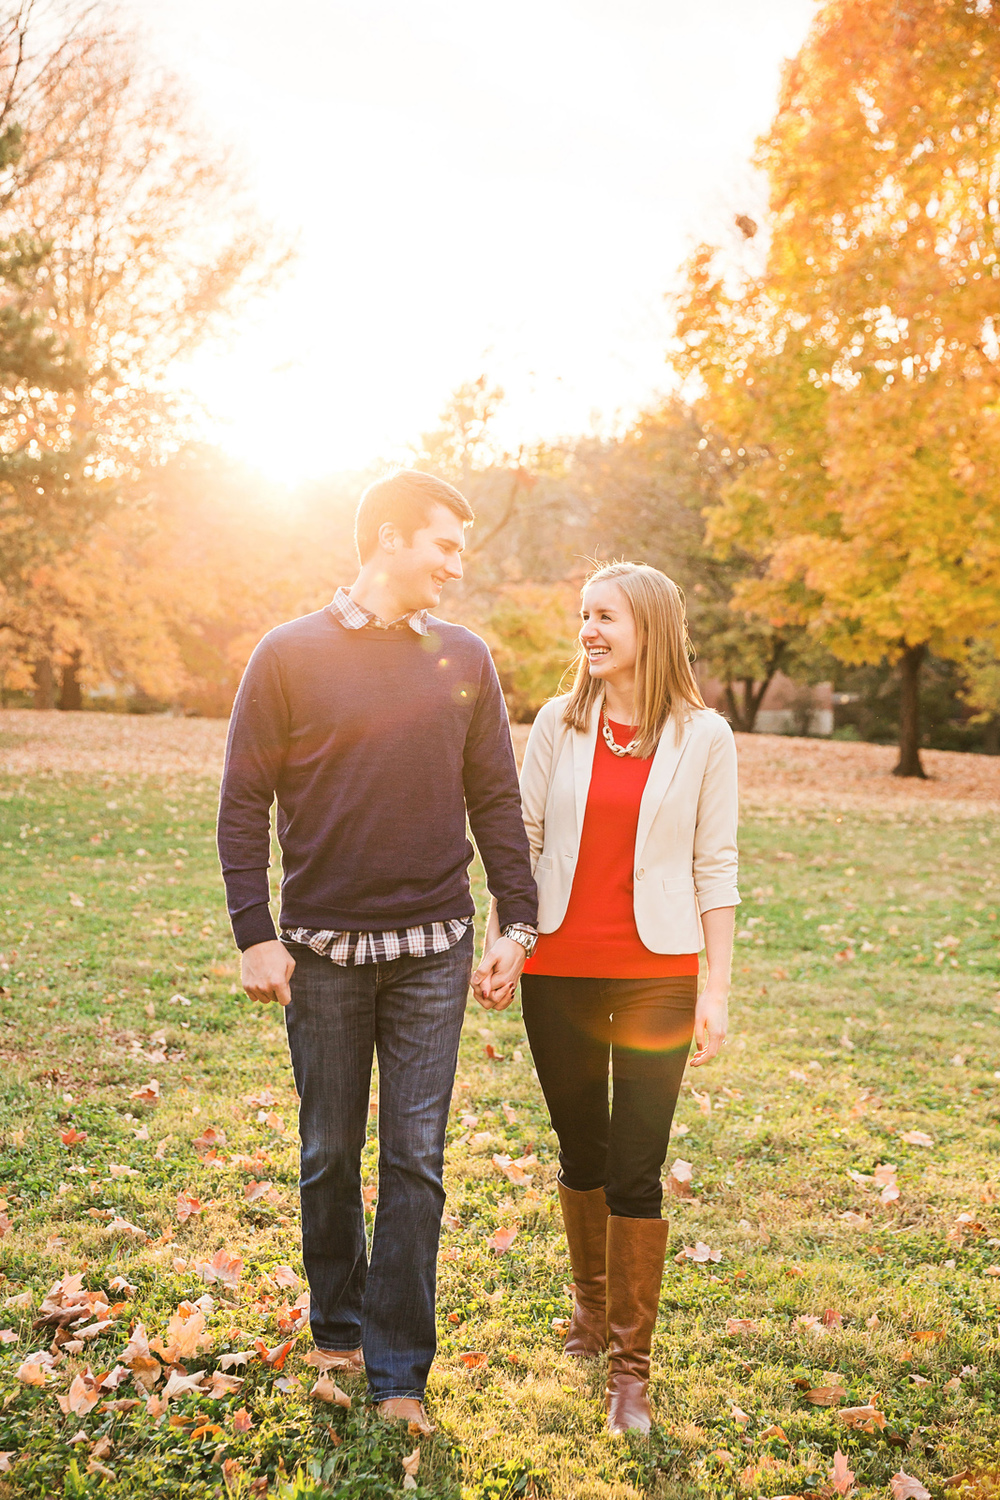 Oldani Photography St Louis Lafayette Square Park Engagement_20141102_171509.jpg